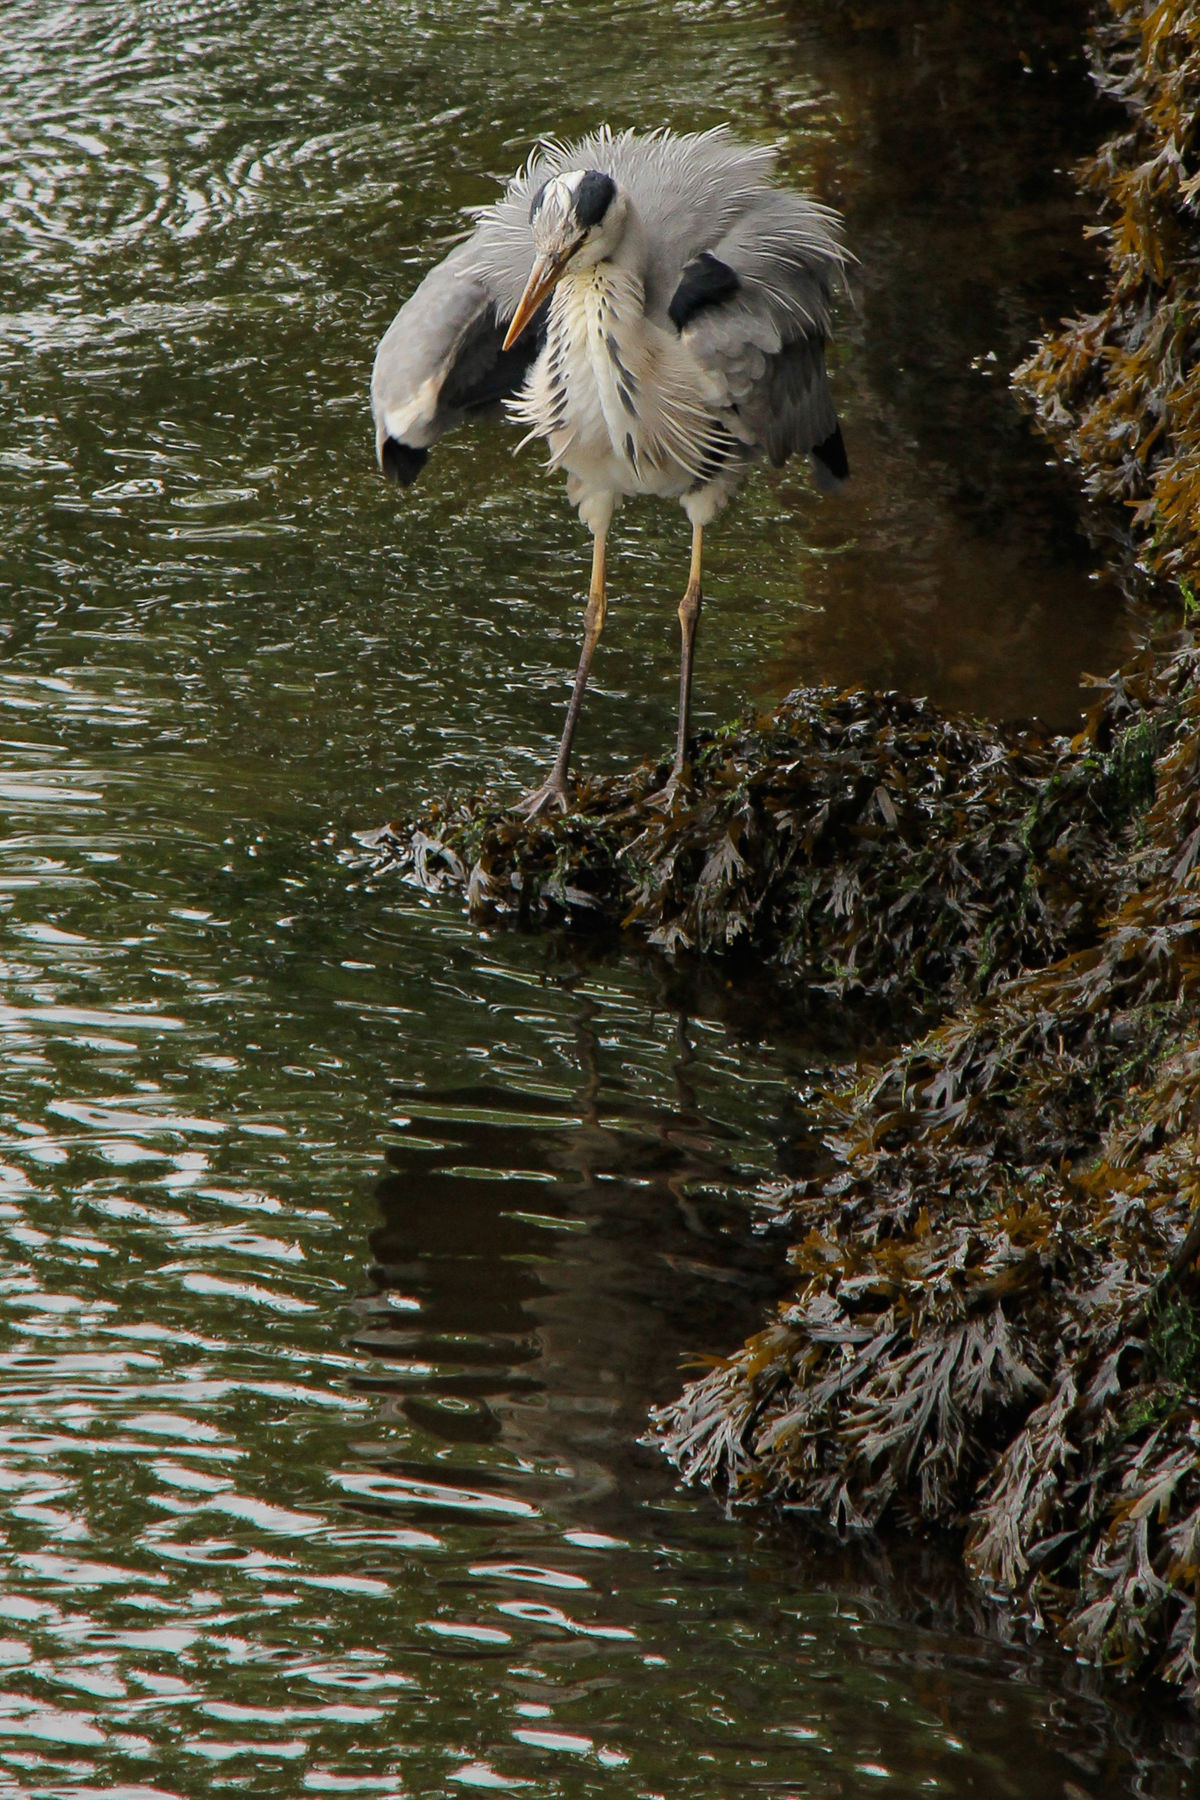 A Heron taking an early morning bath in the river Lee, in Cork, Ireland, Then flying up over the bridge and off down stream. B Bird Bath Bird Bathing Bird Photography Cork Cork City Day Feathers Flight Heron Herons No People Outdoors River River Lee Shake Shake Your Feathers